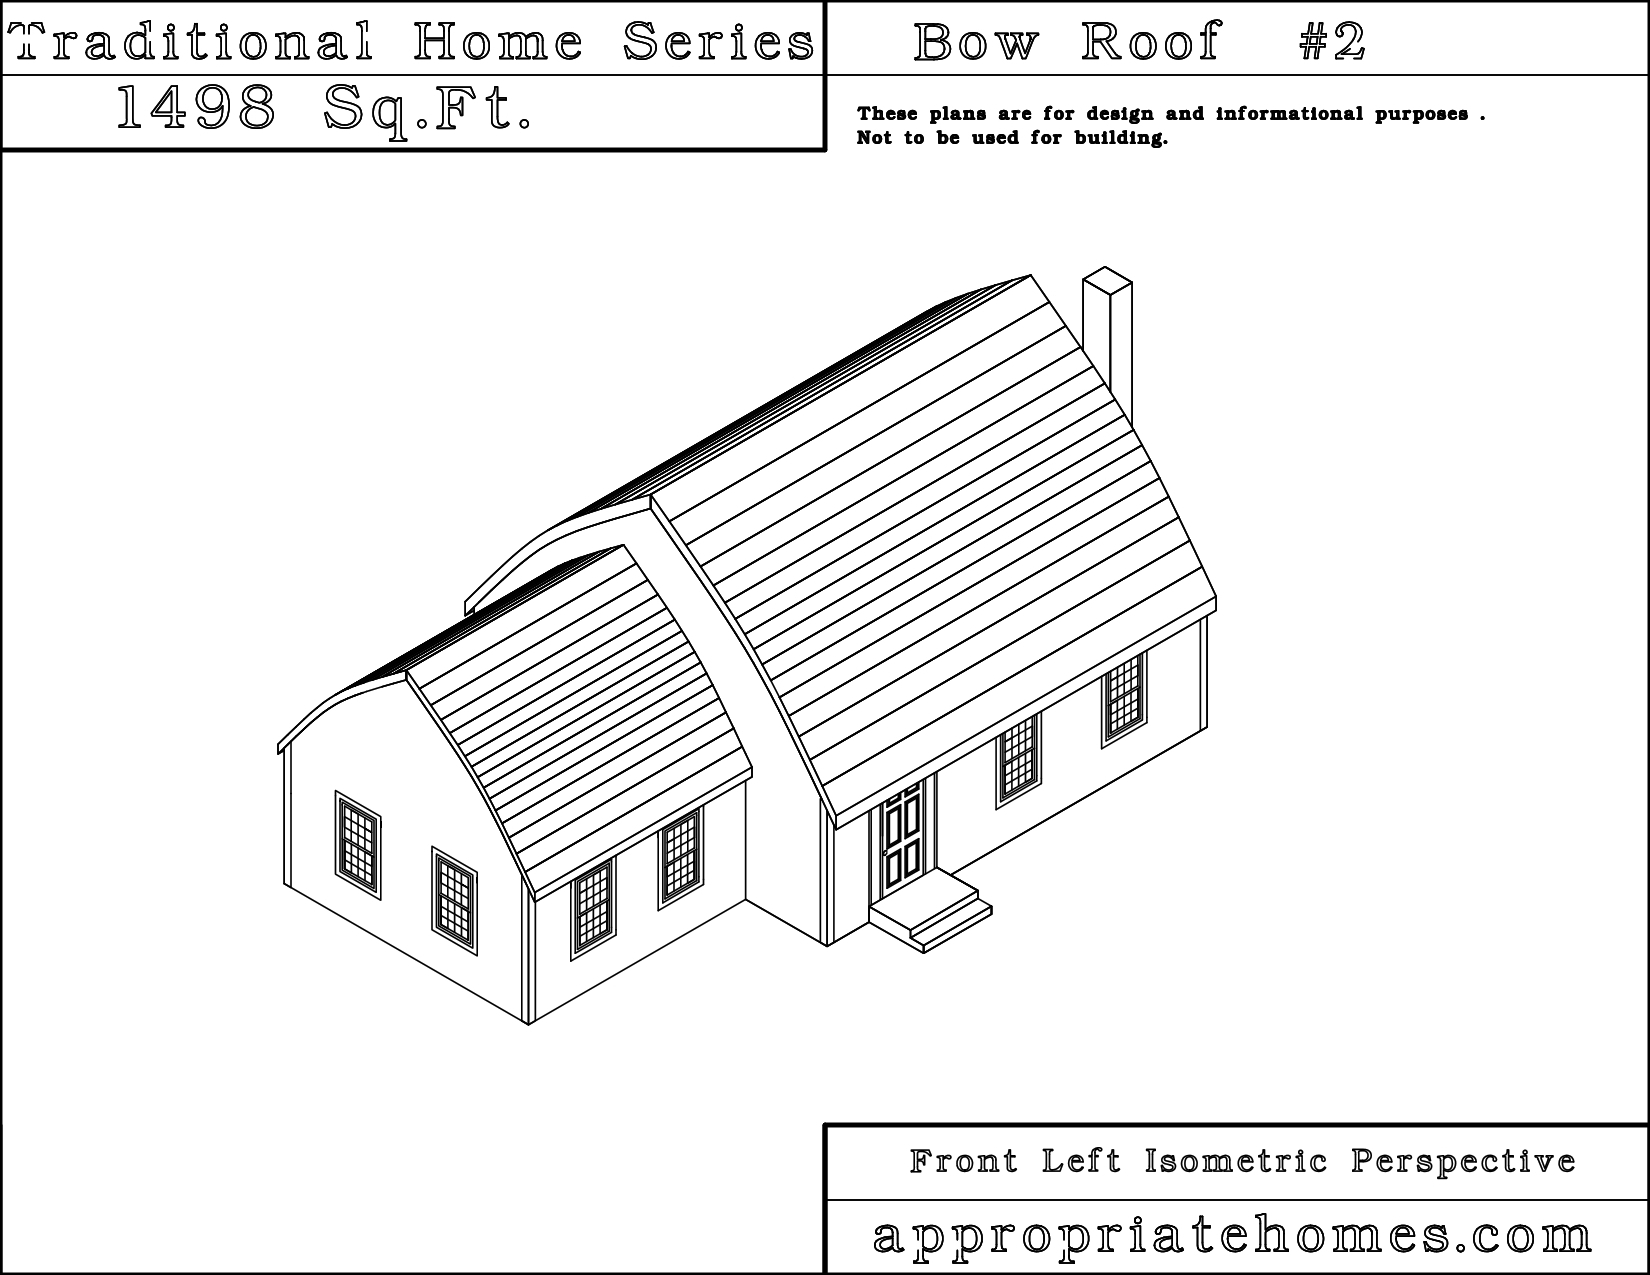 cape cod home design bow roof style house plans builder